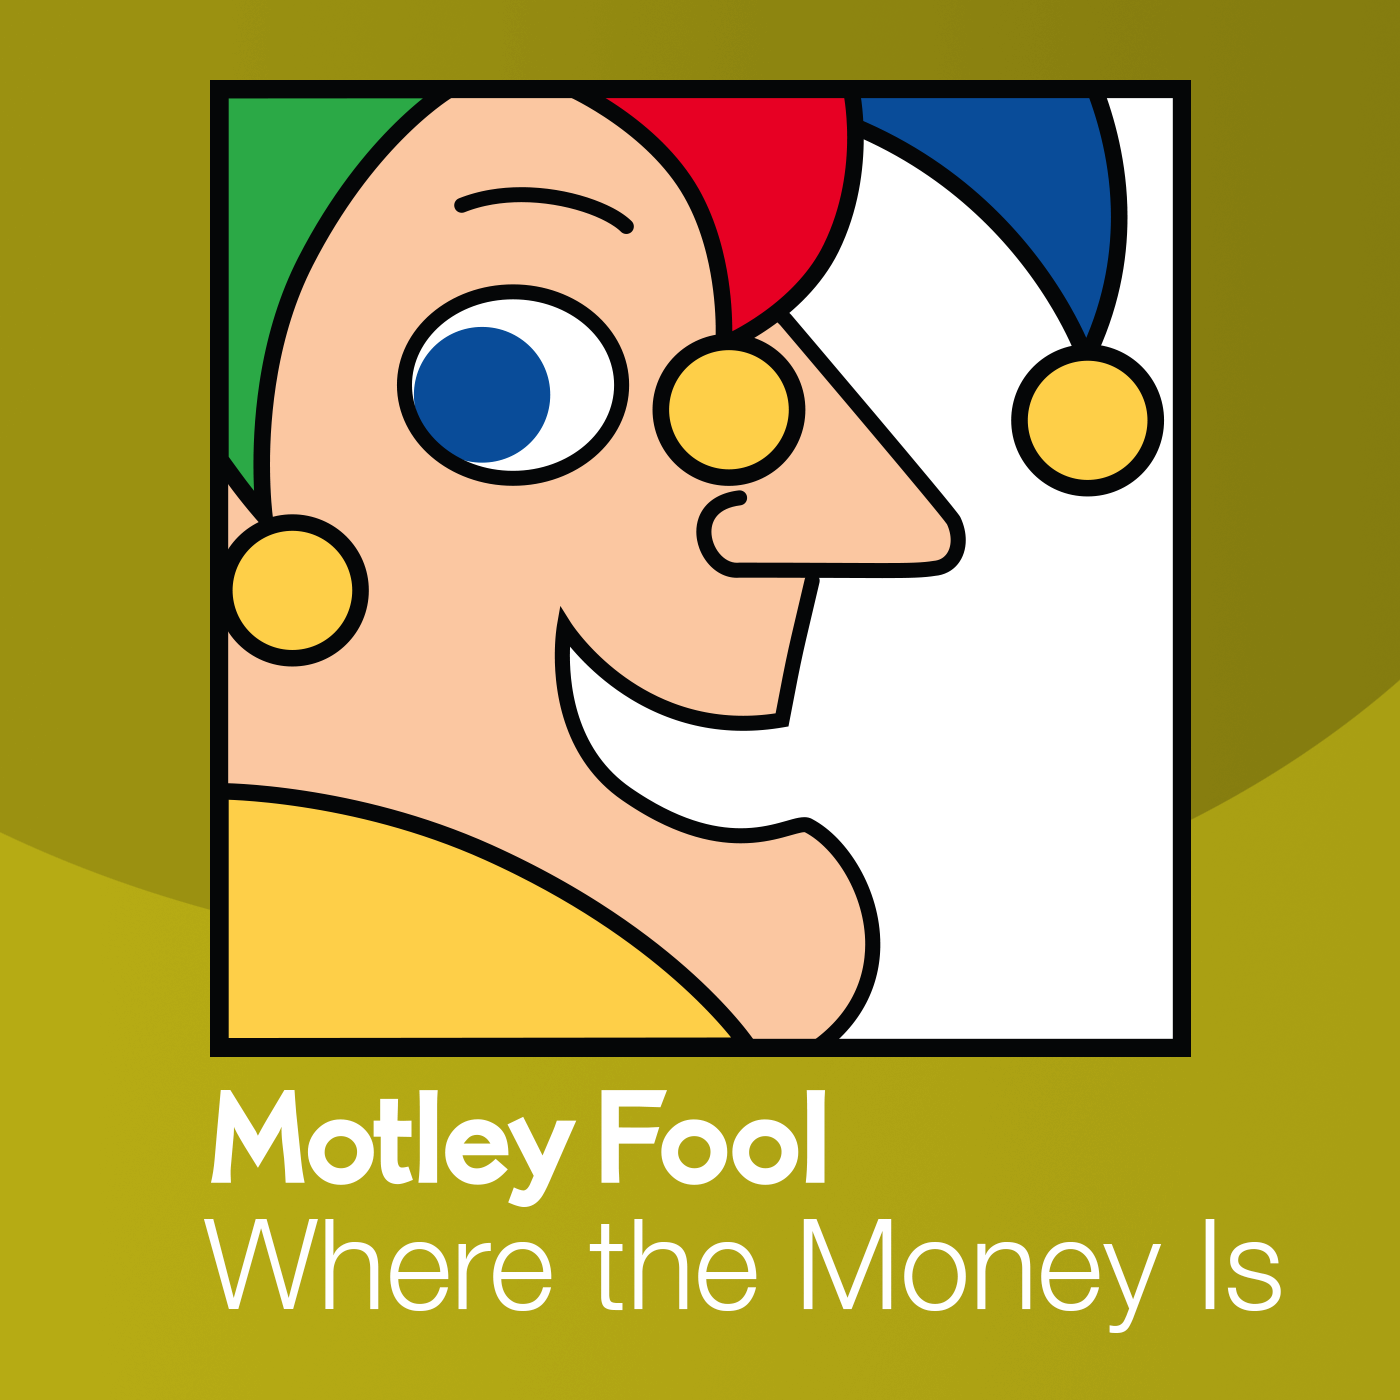 Where the Money Is 02.21.14